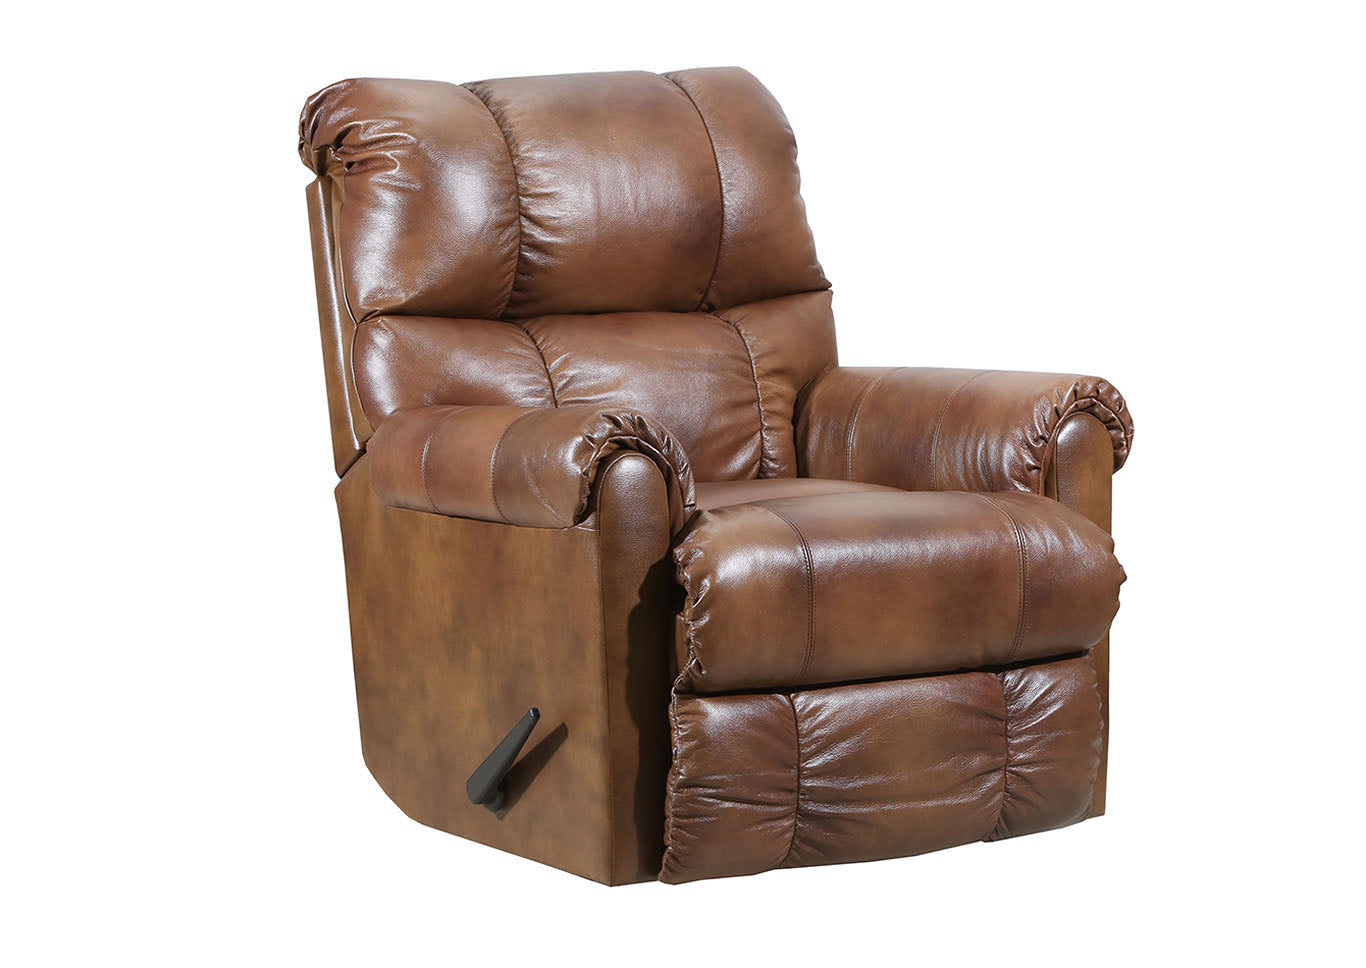 Lane Leather Soft Touch Chaps Recliner